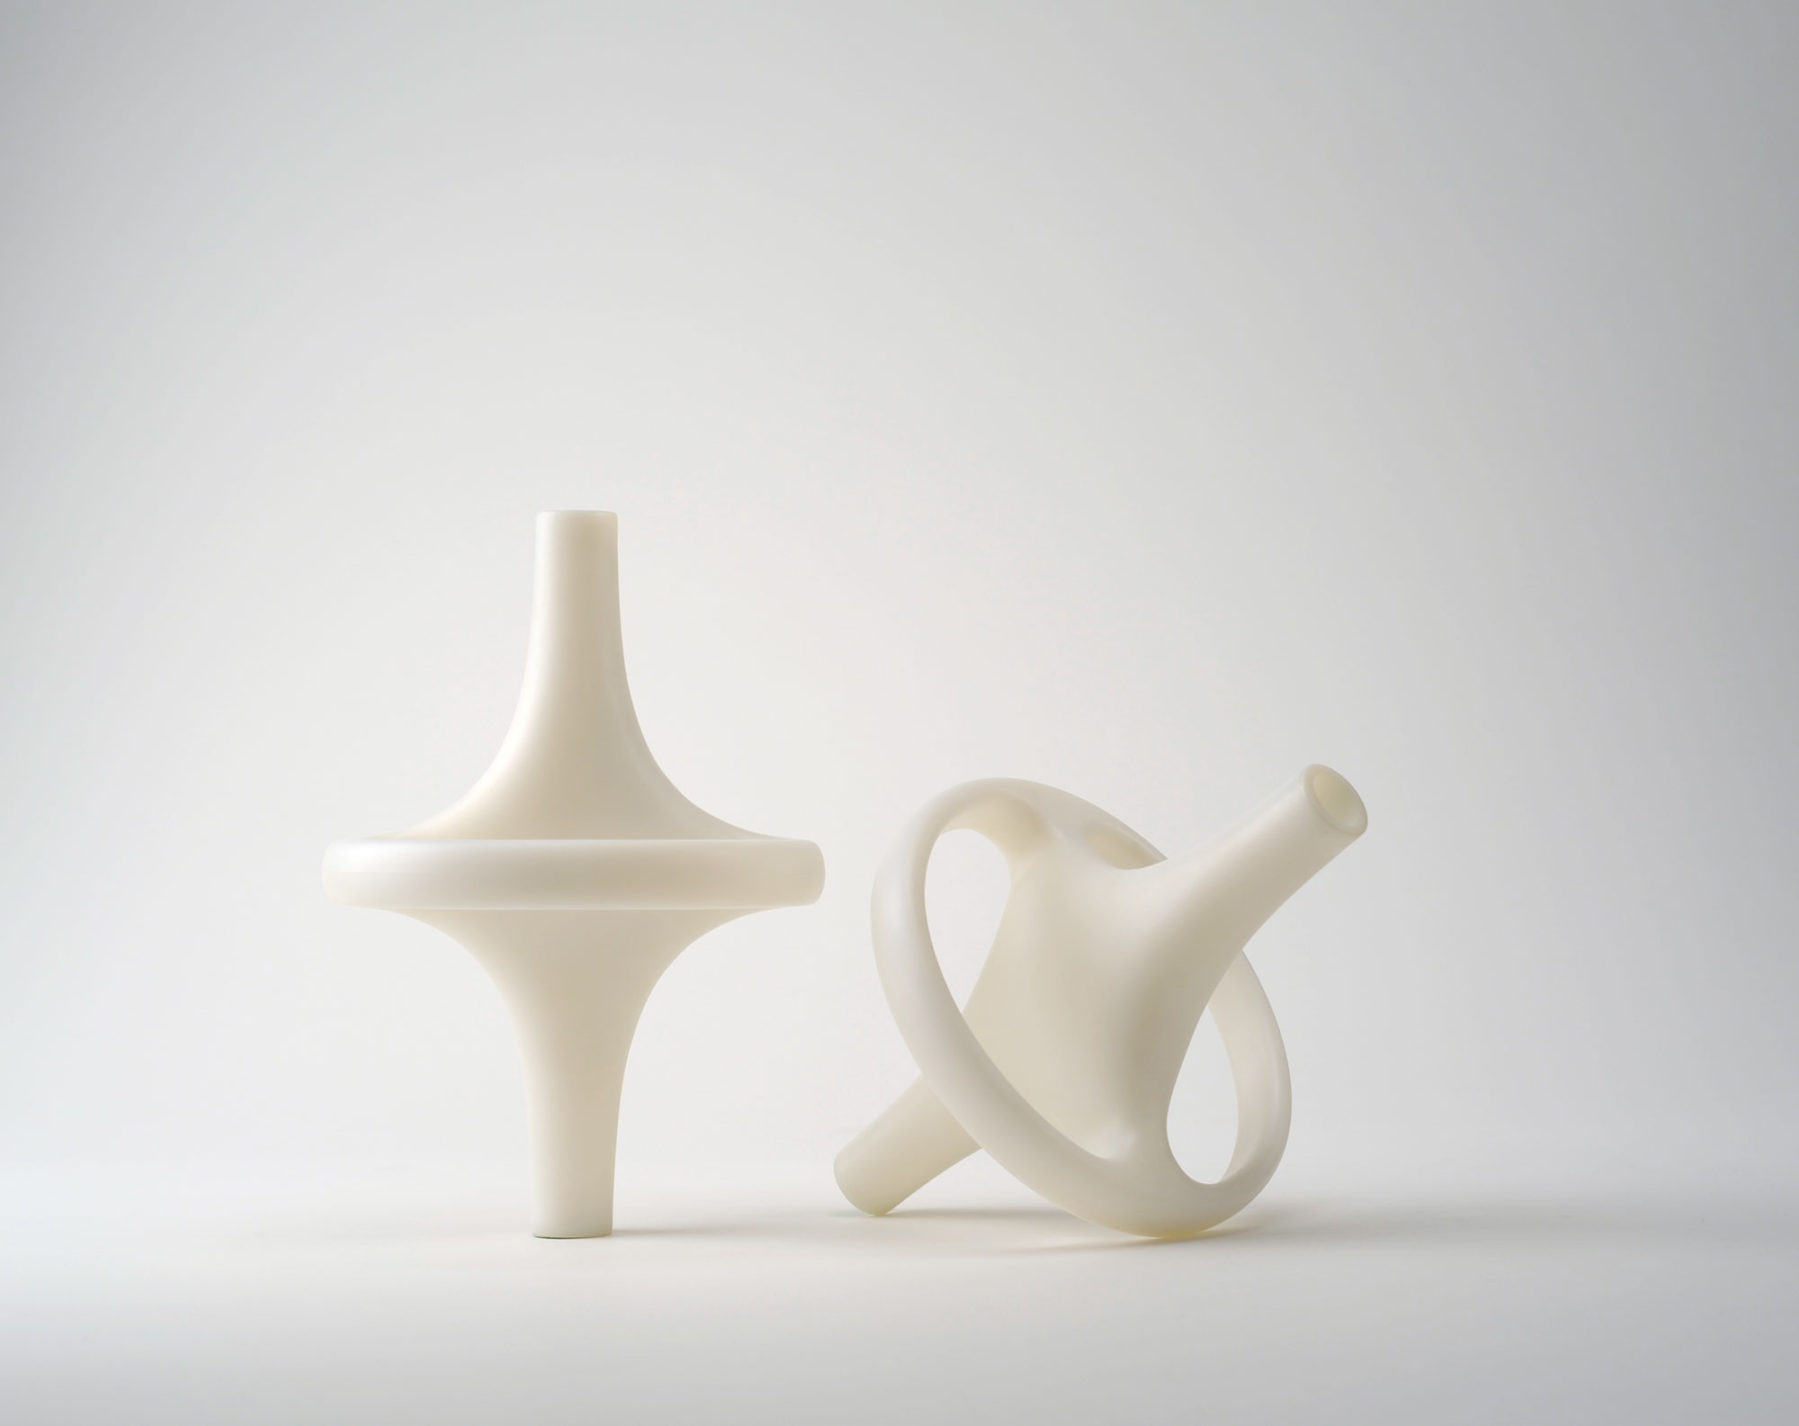 Two molded white plastic vases, each composed of long tube that widens at the center to connect to a surrounding ring.